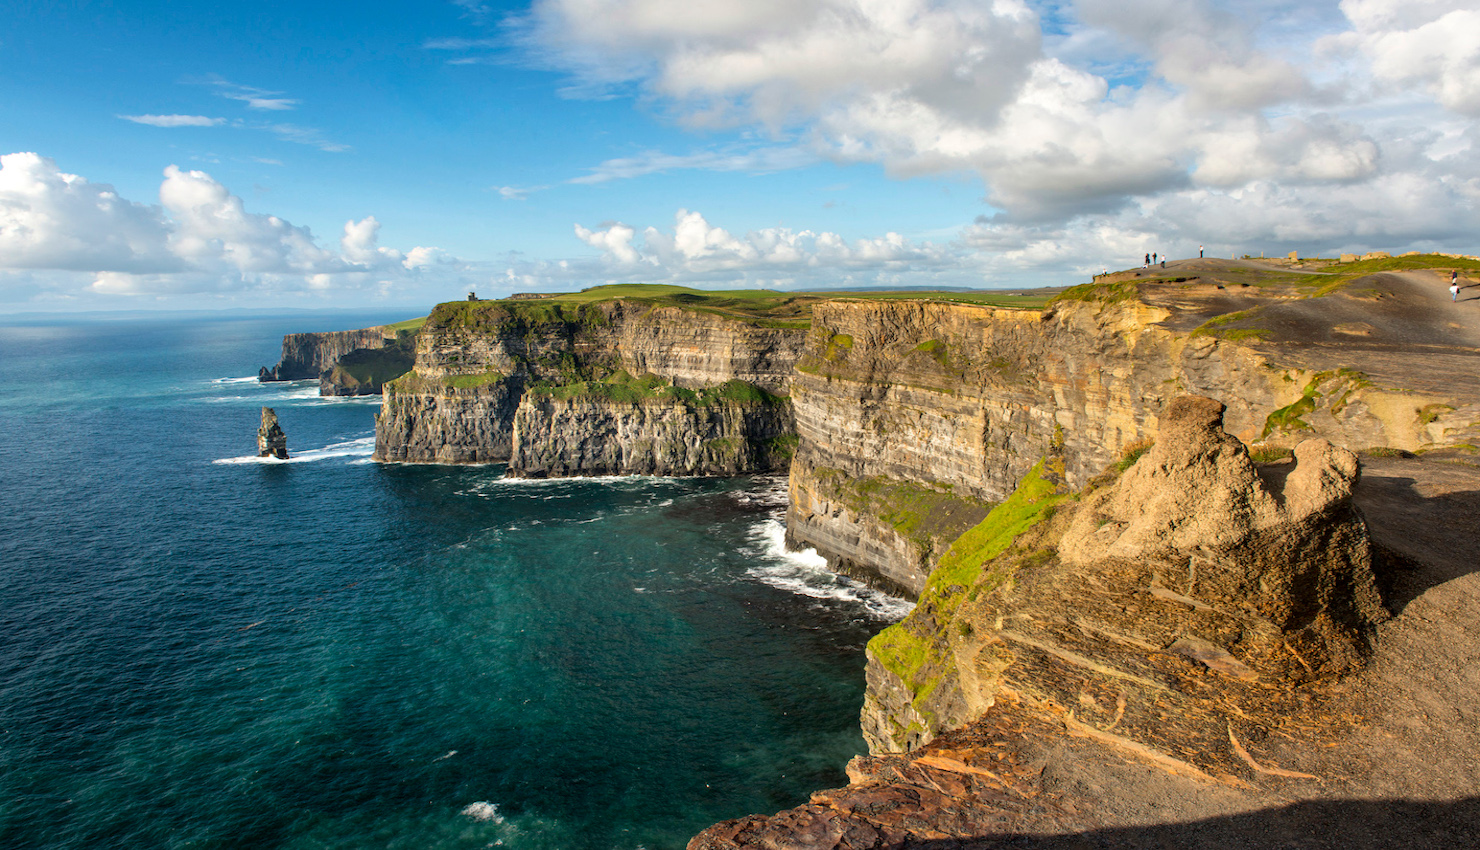 Cliffs-of-Moher-magazinehorse.jpg